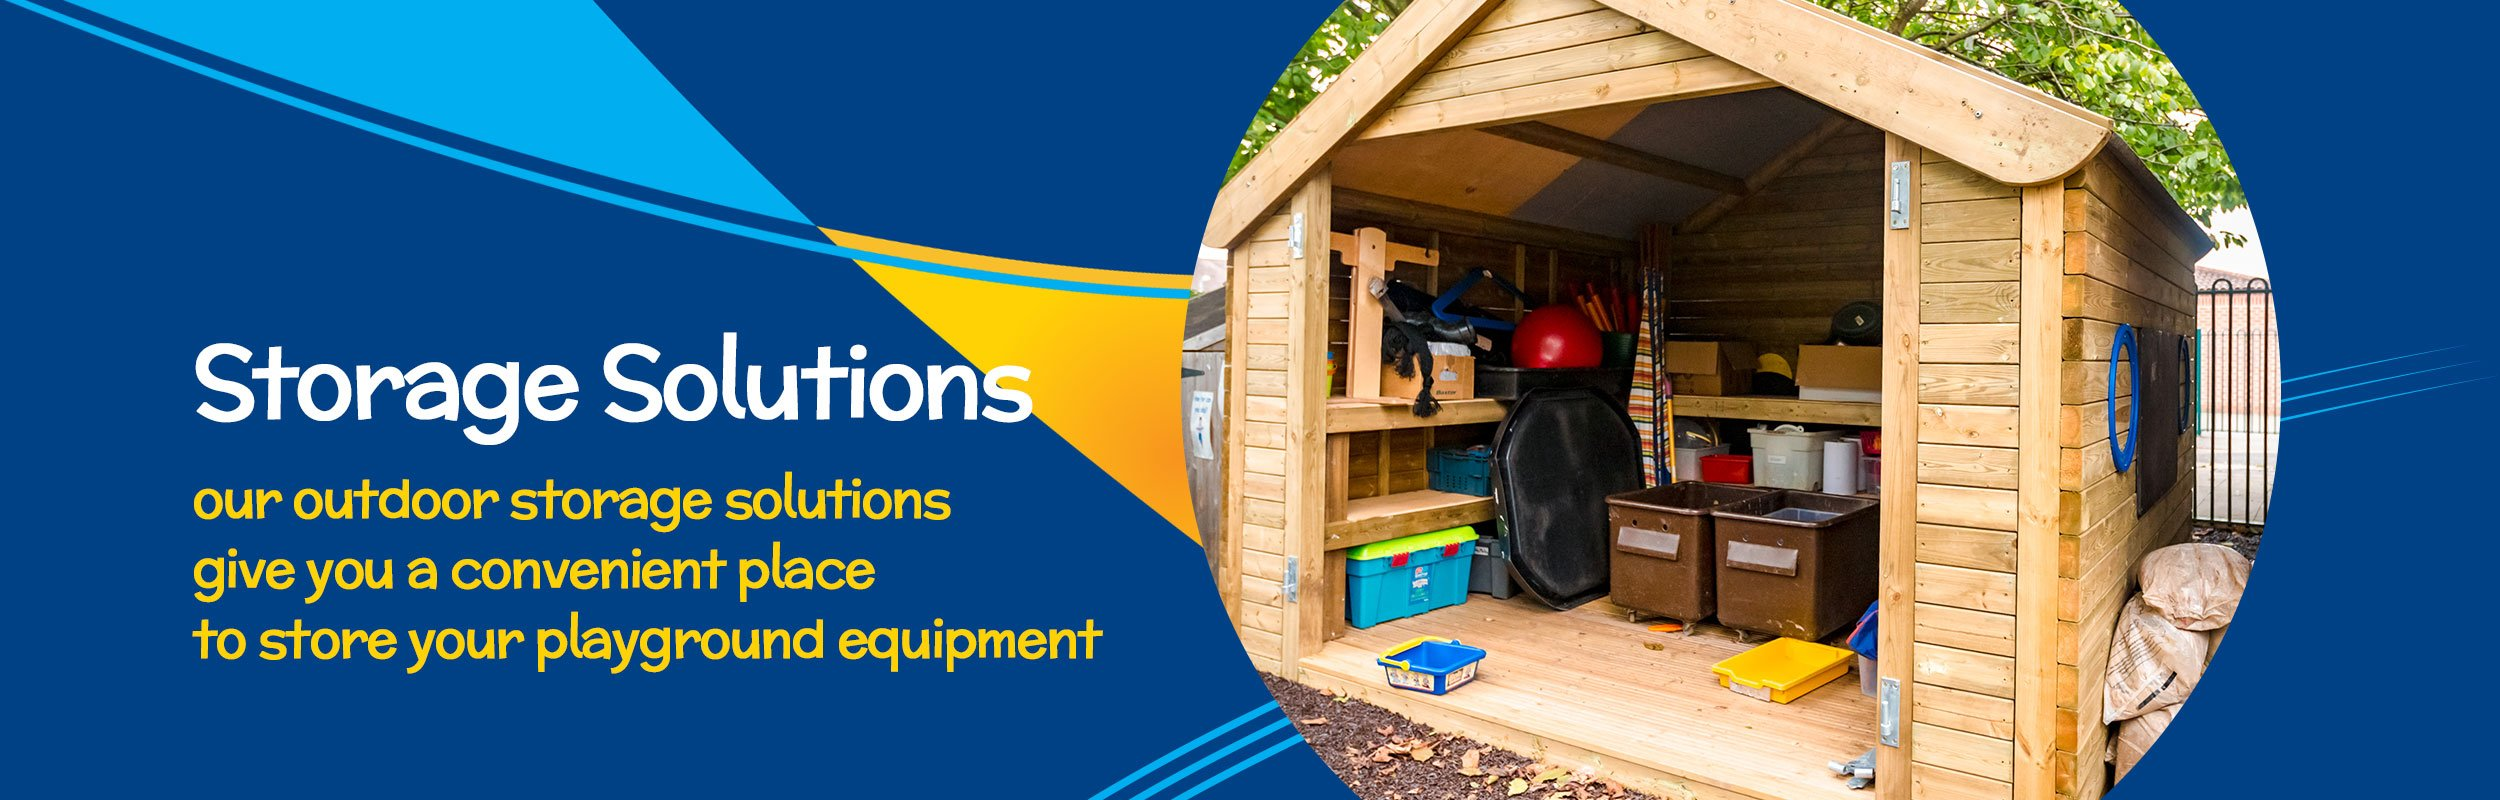 ... Especially Our Interchangeable Range Of Educational Panels And Ropes,  Then Our Selection Of Storage Solutions Will Provide You With The Ideal ...